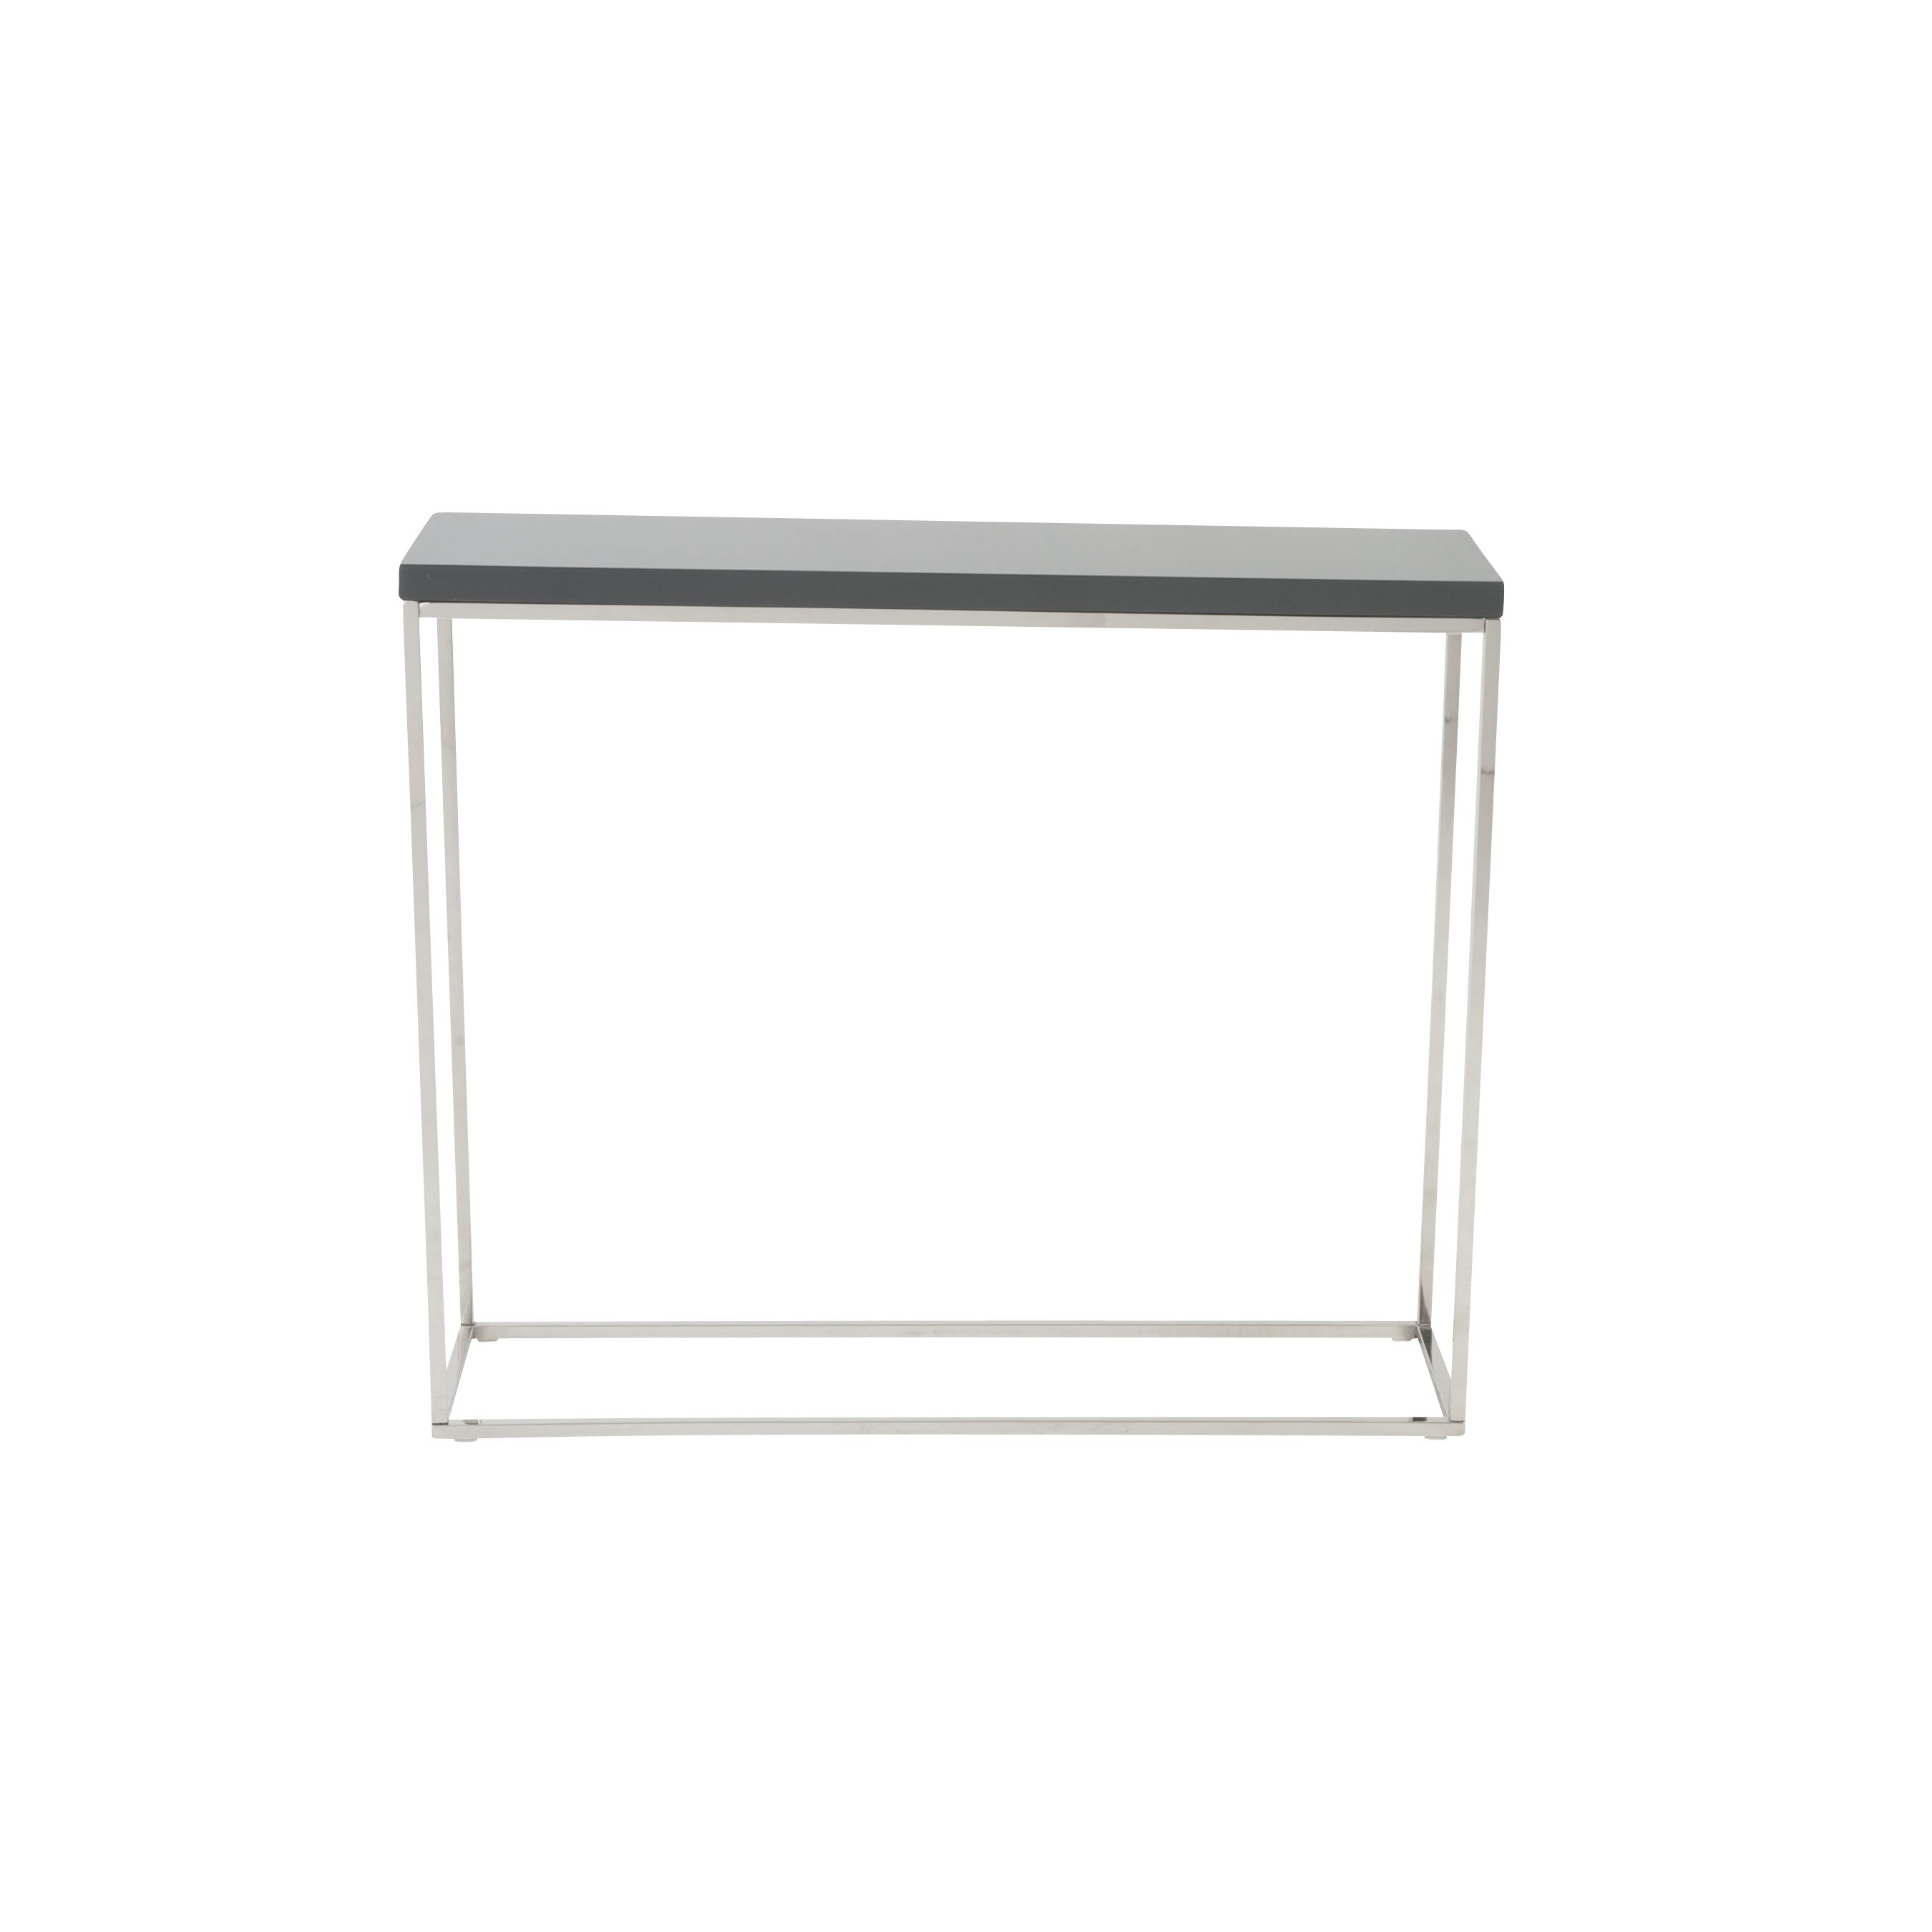 Polished Stainless Steel Console Table